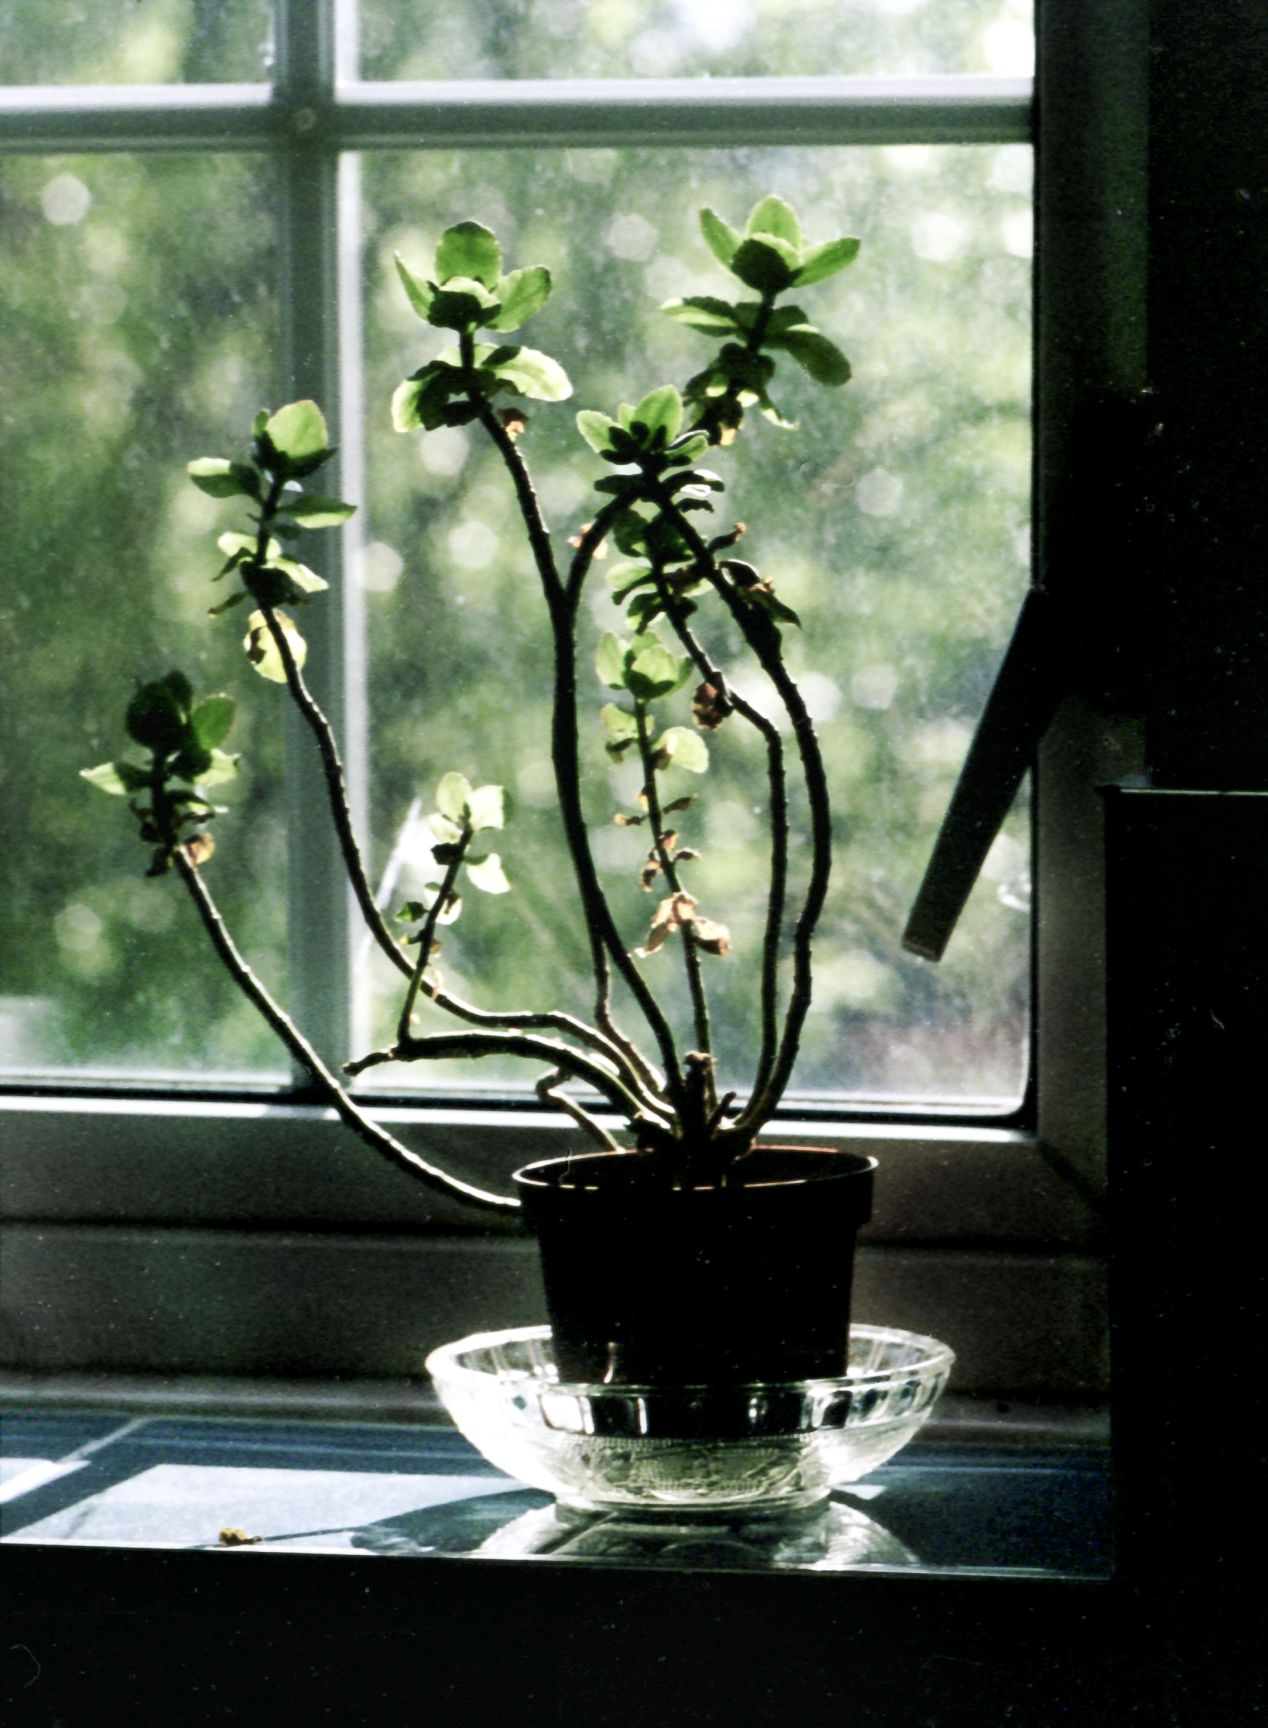 Windowsill, May 2020, taken with an Olympus PEN FV and a Zuiko 100/3.5 on Kodak Vision motion picture film, ISO 50. ECN-2 process carried out by a commercial lab.